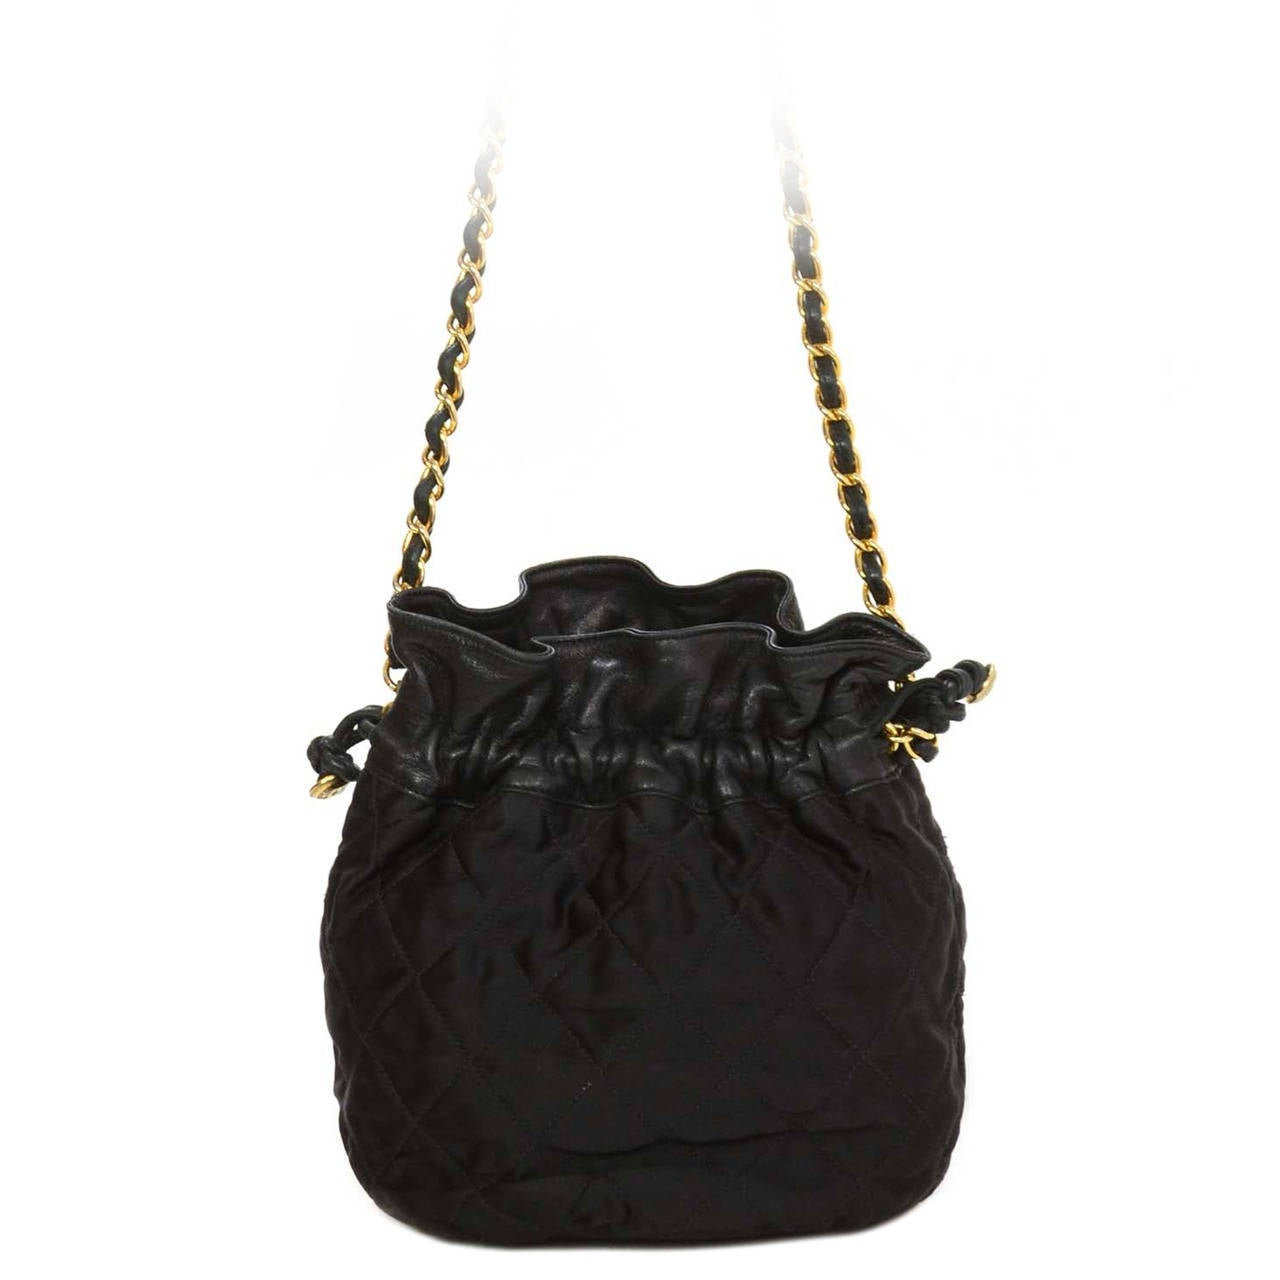 473a066cc129 CHANEL 1988 Vintage Black Leather Satin Quilted Drawstring Bag For Sale